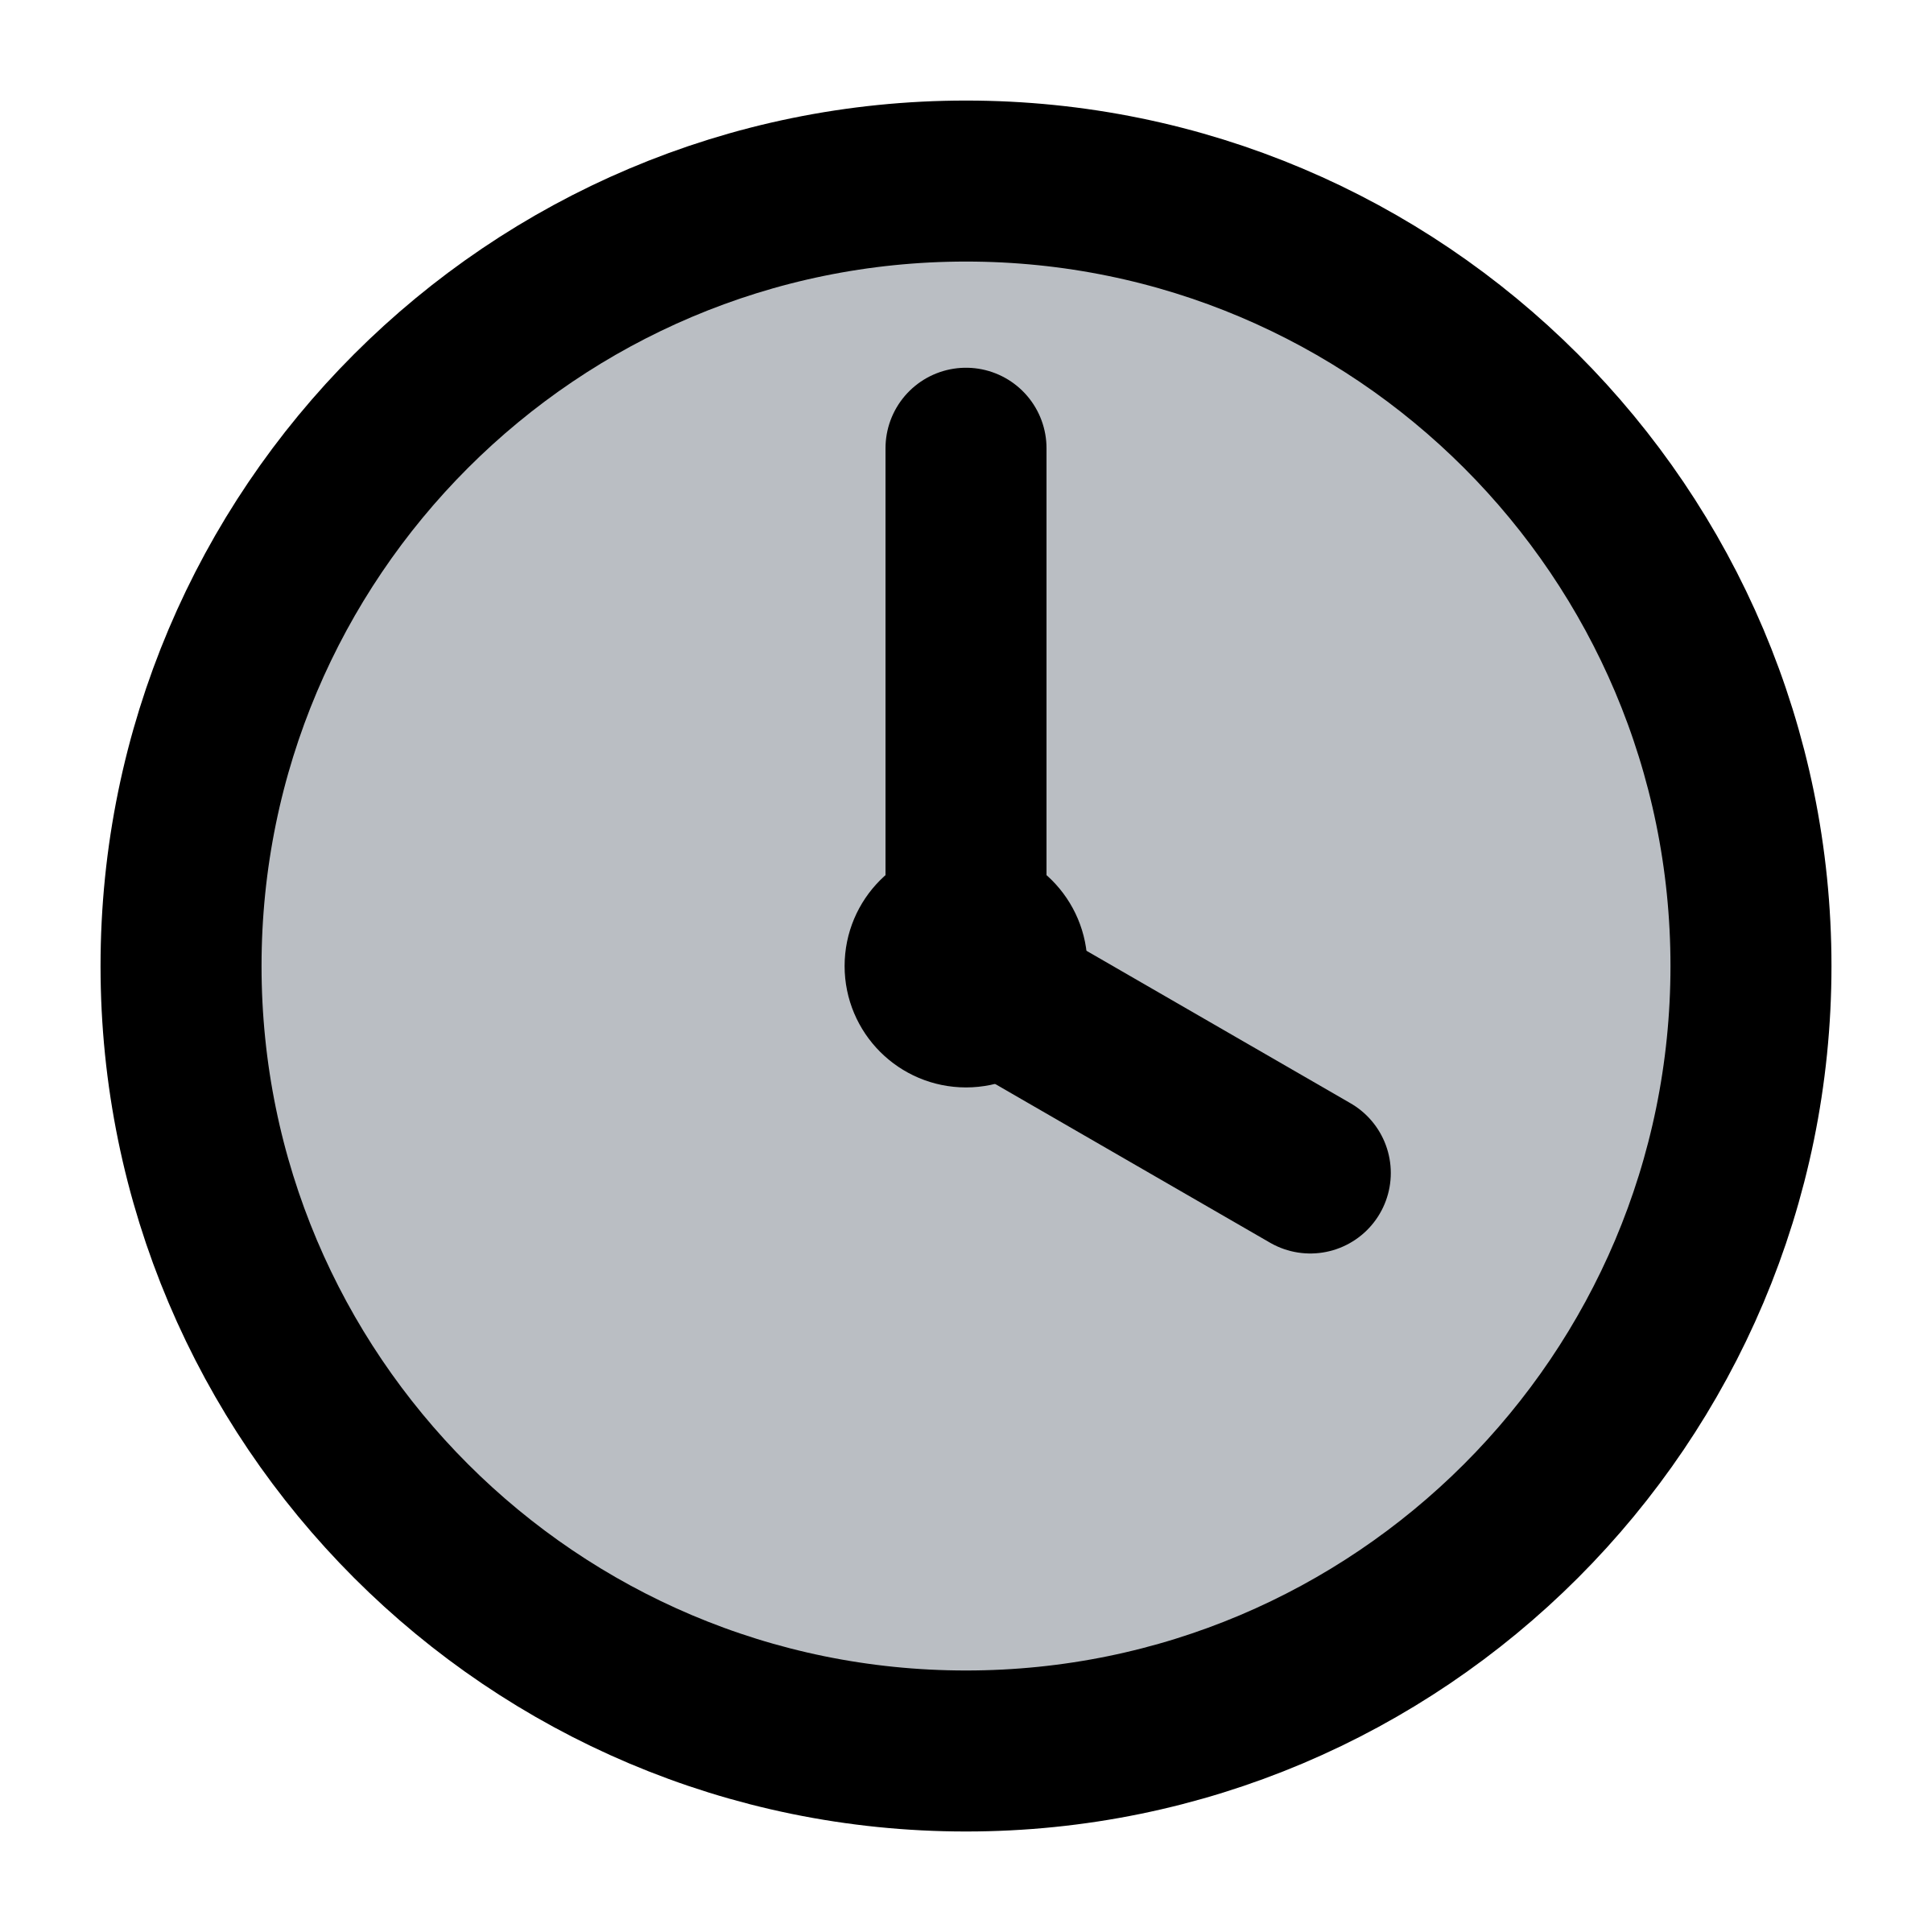 Clock icons png free. Clocks clipart simple